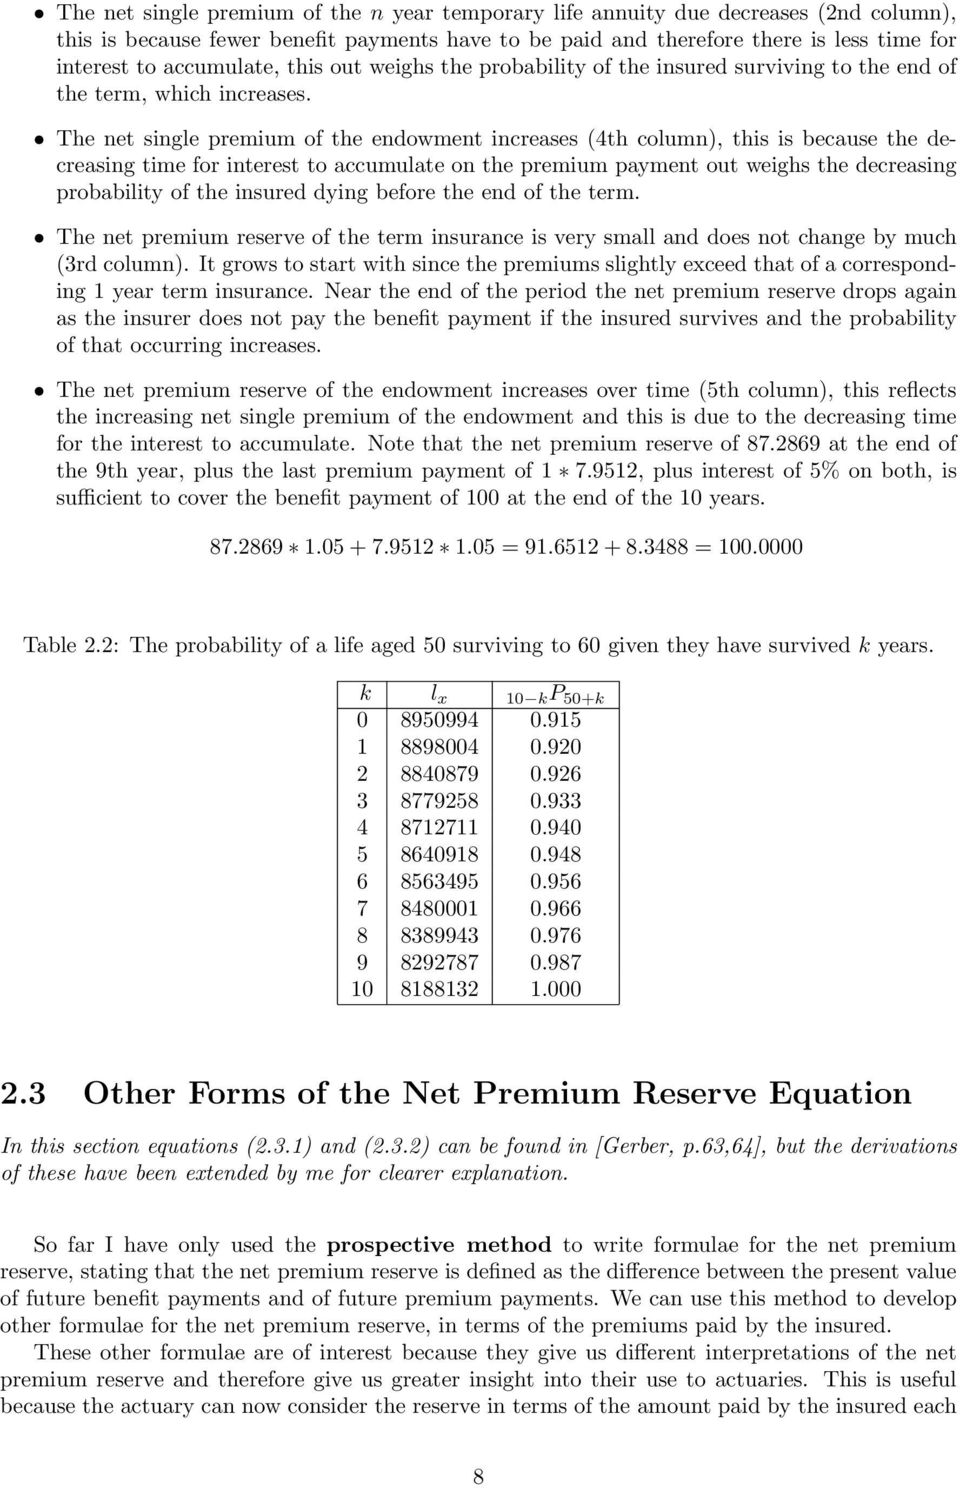 The net single premium of the endowment increases (4th column), this is because the decreasing time for interest to accumulate on the premium payment out weighs the decreasing probability of the